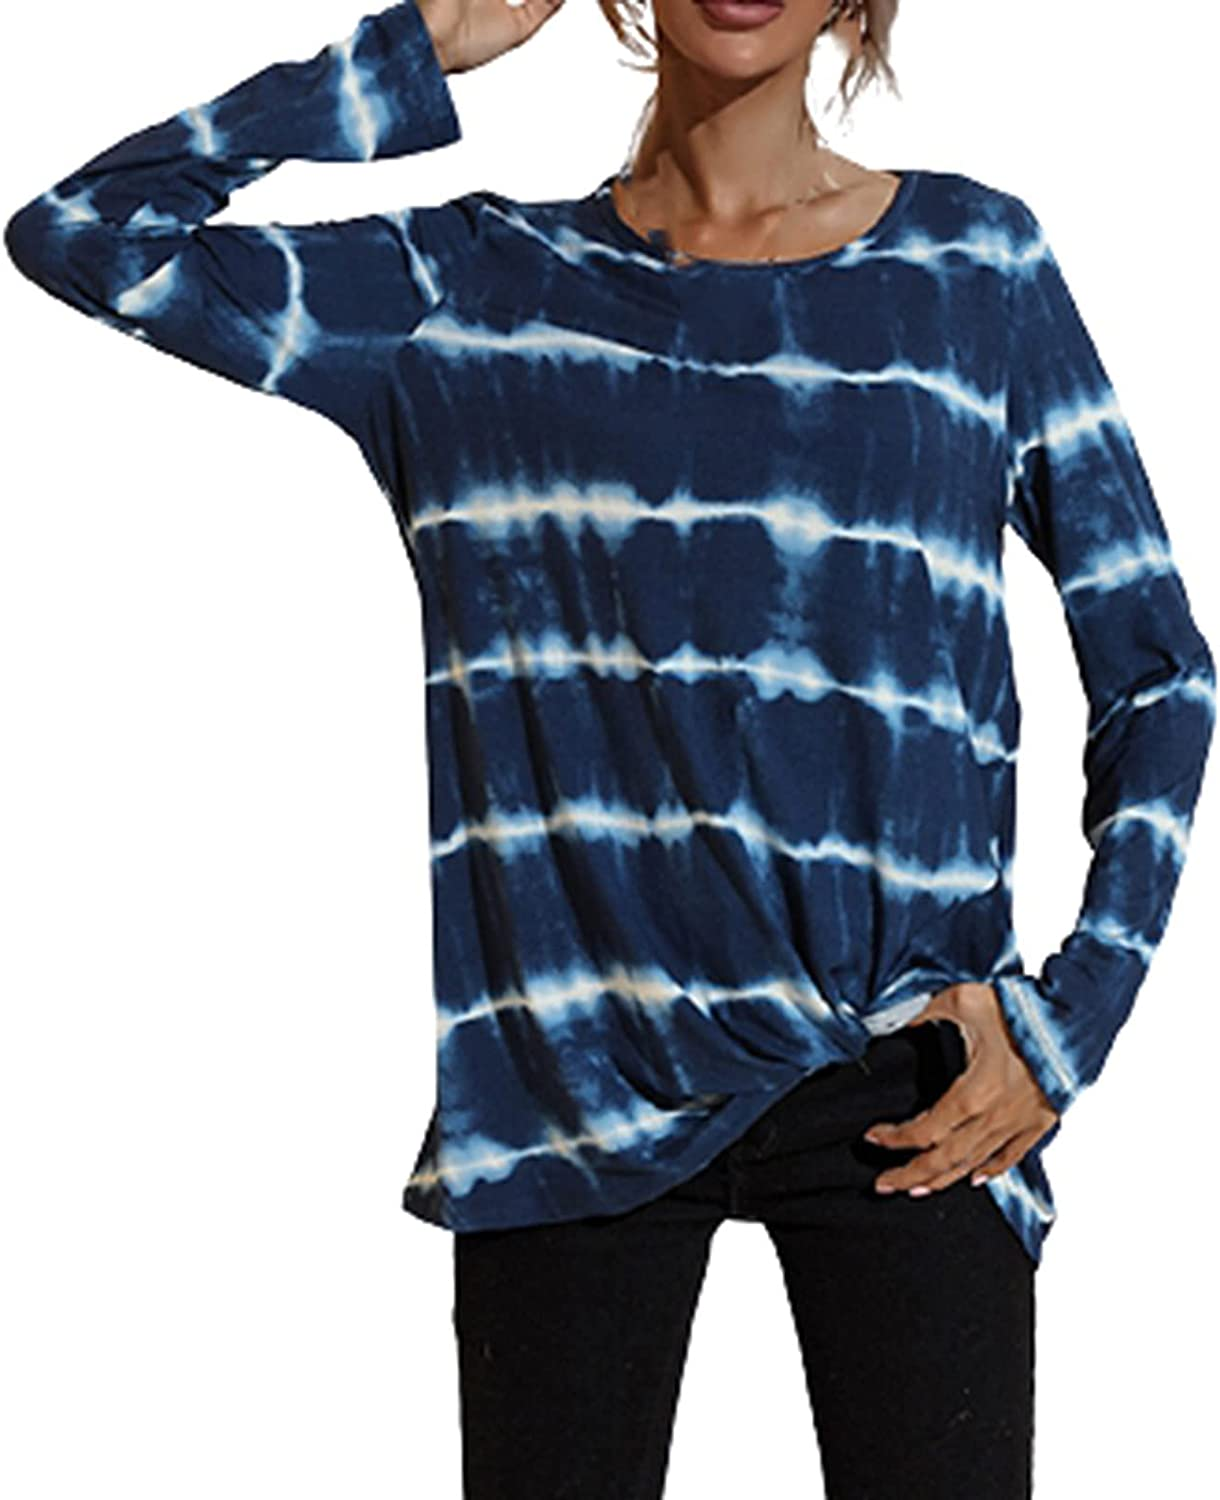 Women's Long Sleeve Tie Dye Printed Striped Pullover Tops Casual Loose Comfortable Shirts Top Blouse Tops